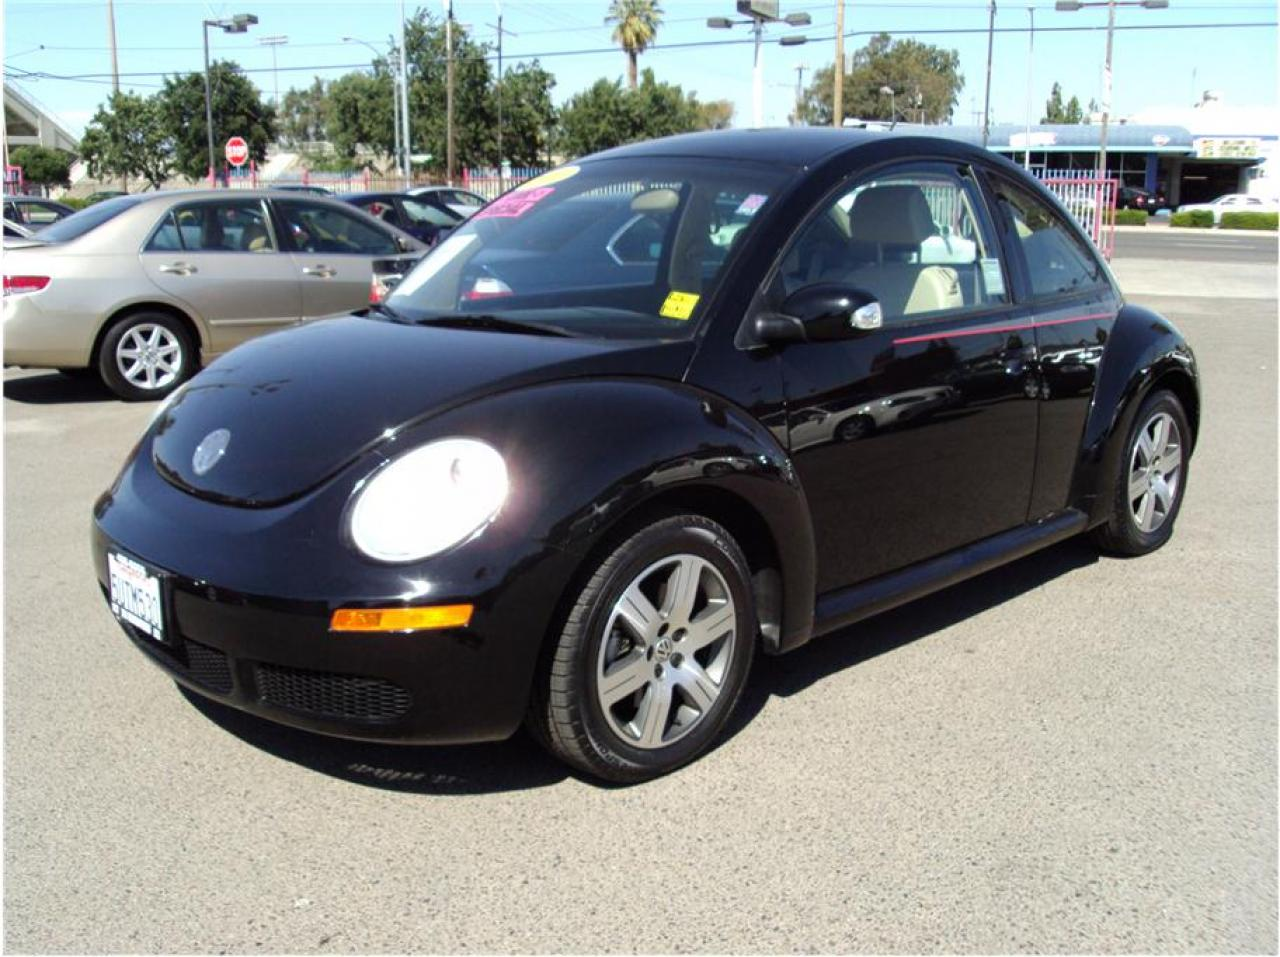 new beetle case analysis 4p Netflix -marketing mix partnership with best buy in which they promoted their new streaming on new insignia tv models which in this case.